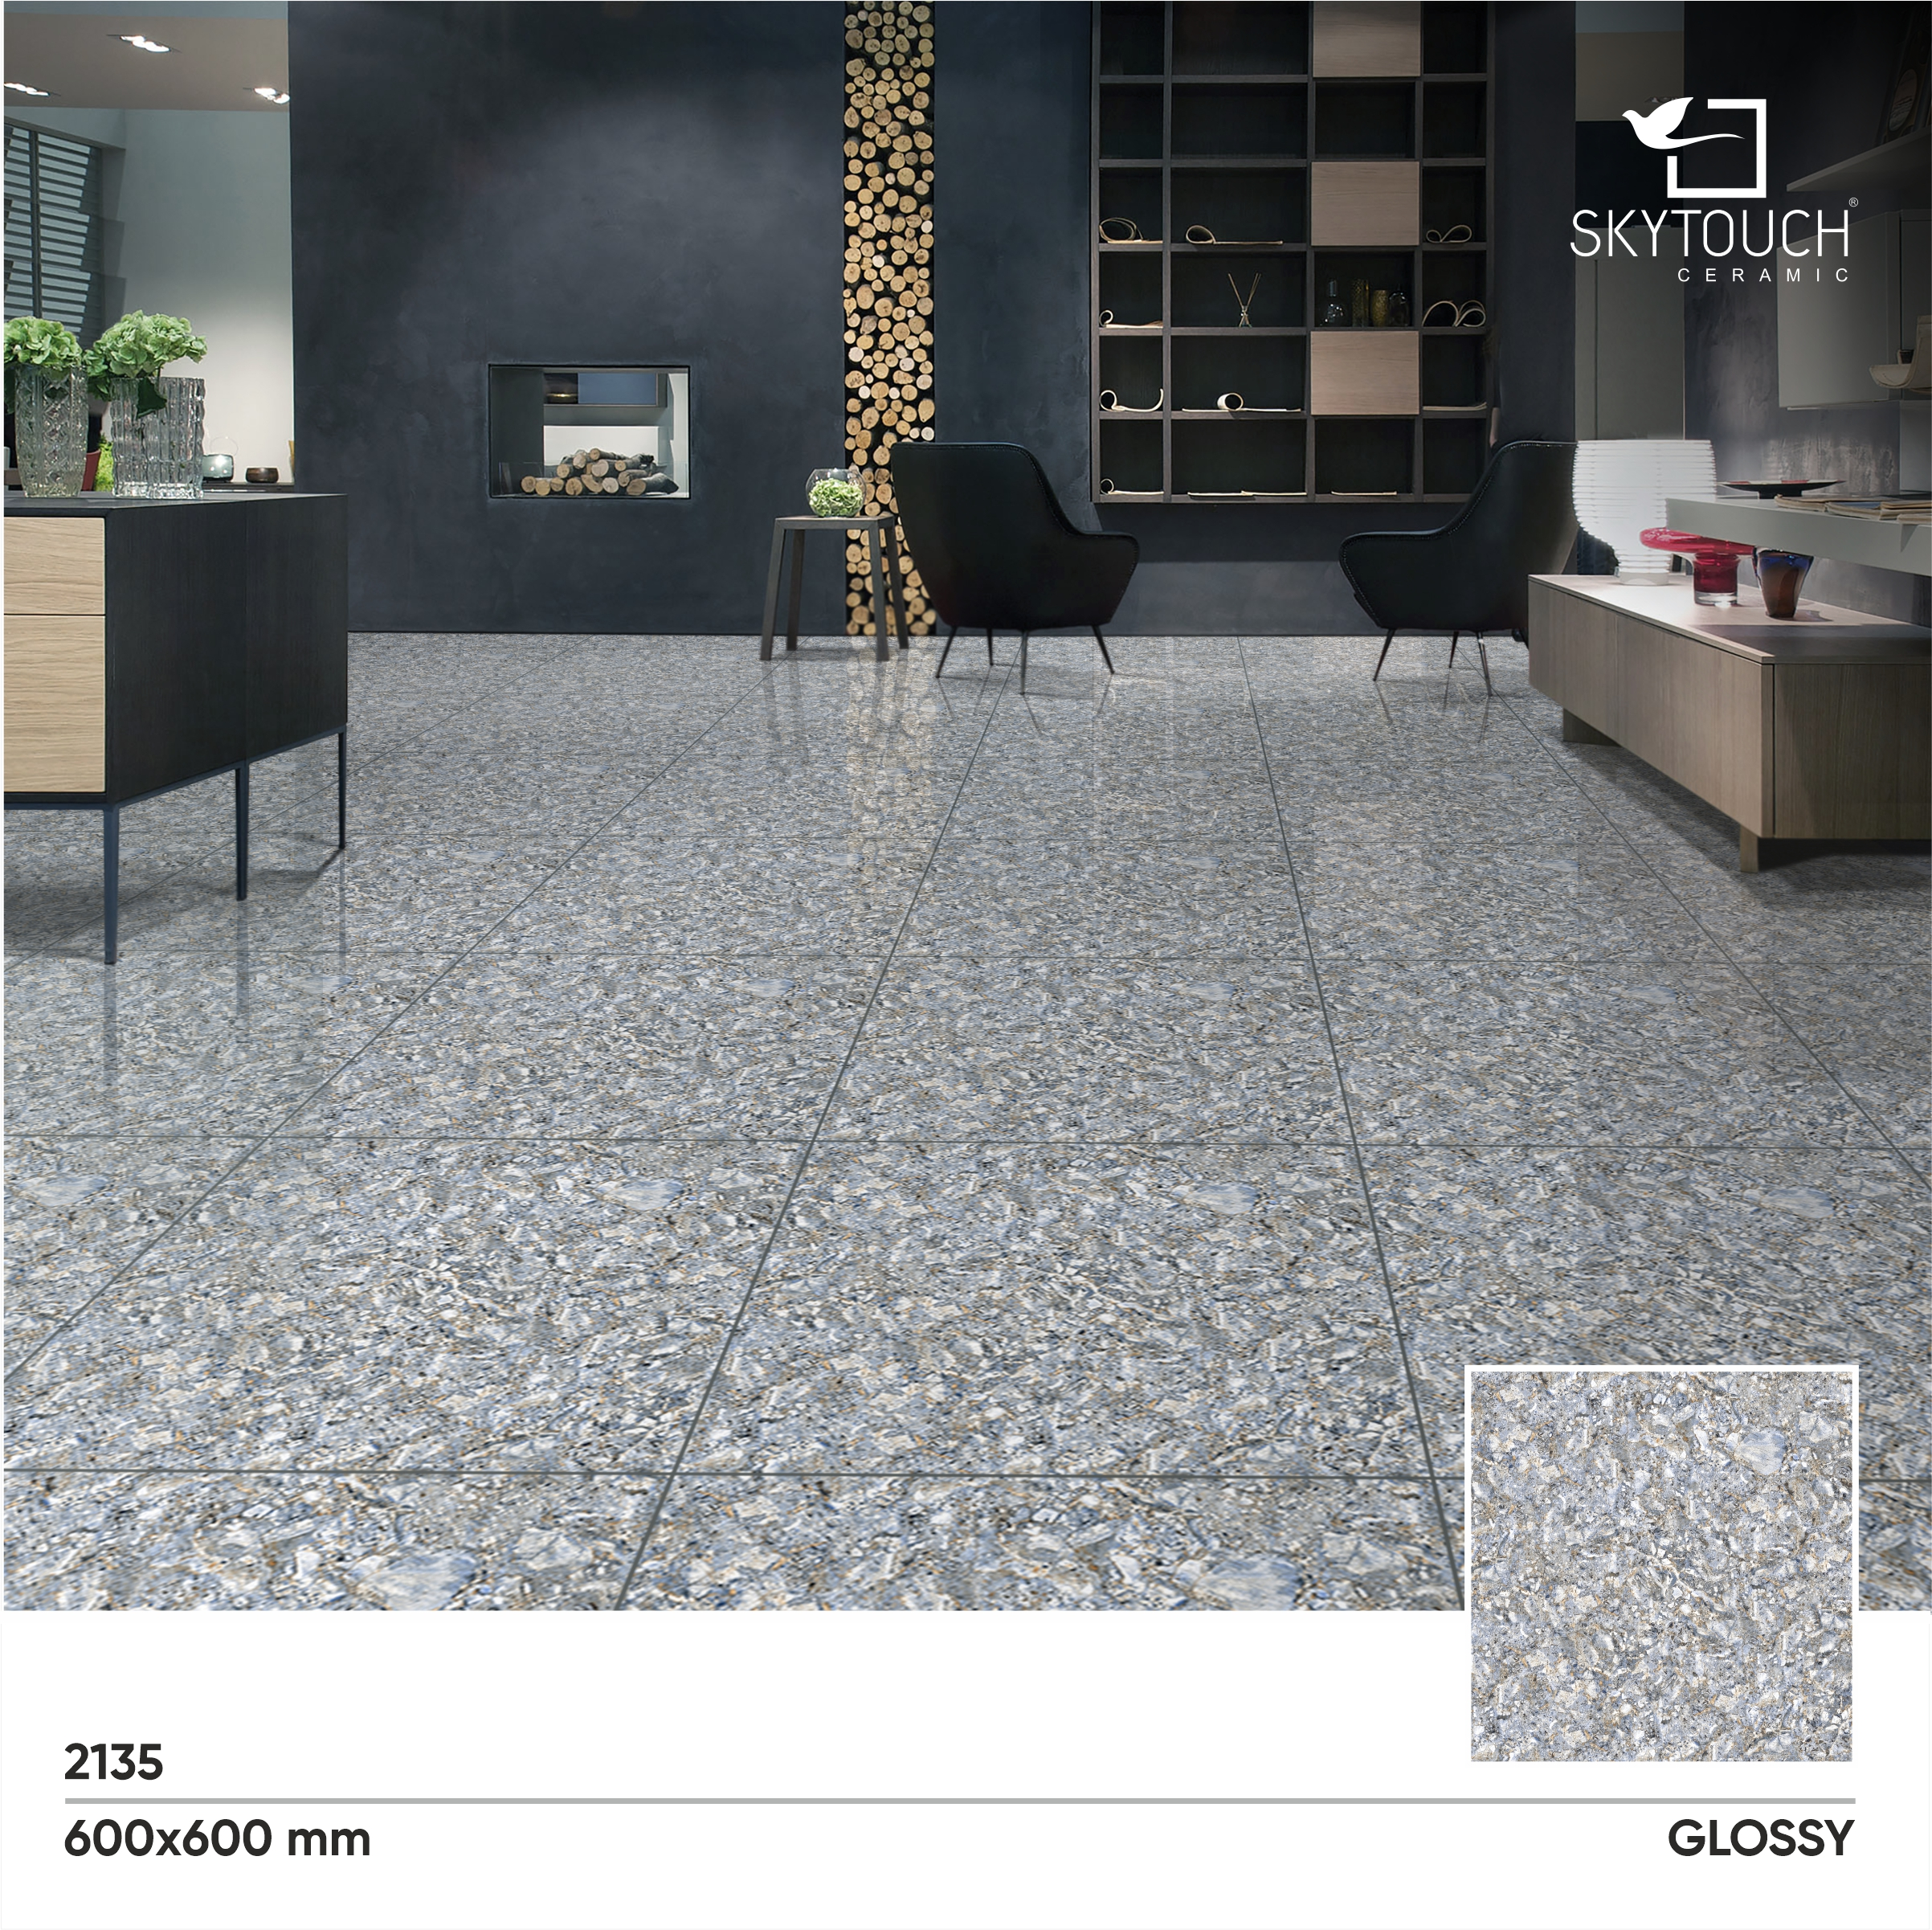 indian lowes high gloss big gres glazed grey customized stylish soft interior porcelain tile floor manufacturers buy indian new design good quality porcelain tile 600x600mm 8 5mm thickness matt cement rustic tile